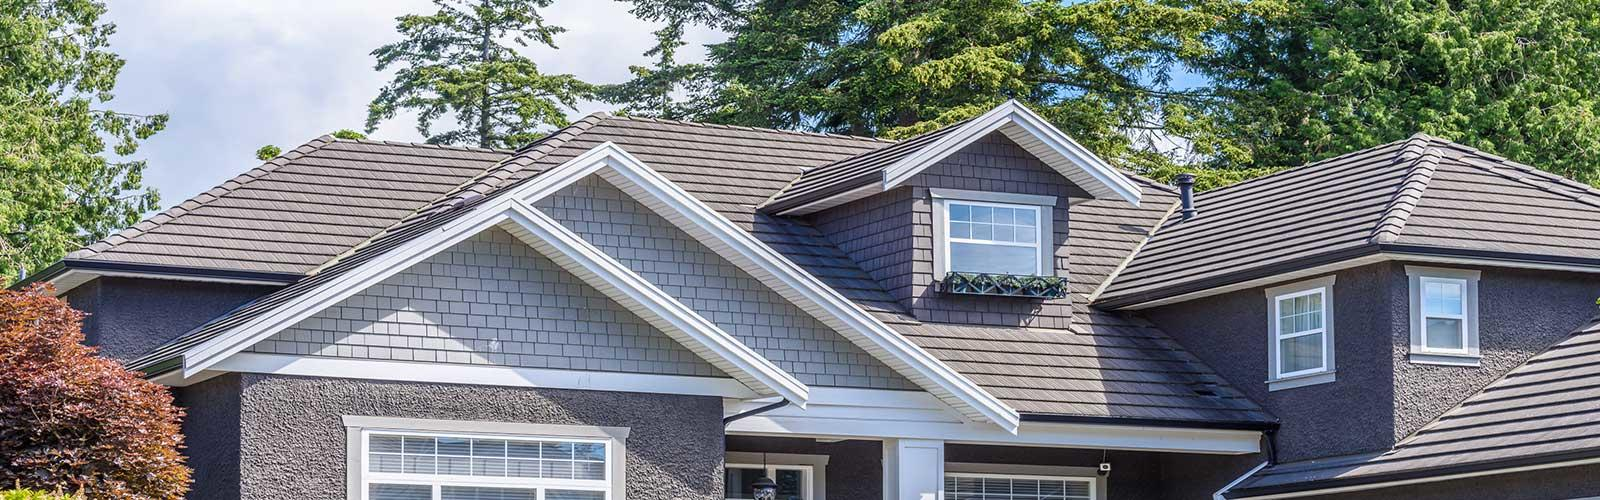 Home Topside Roofing Amp Siding